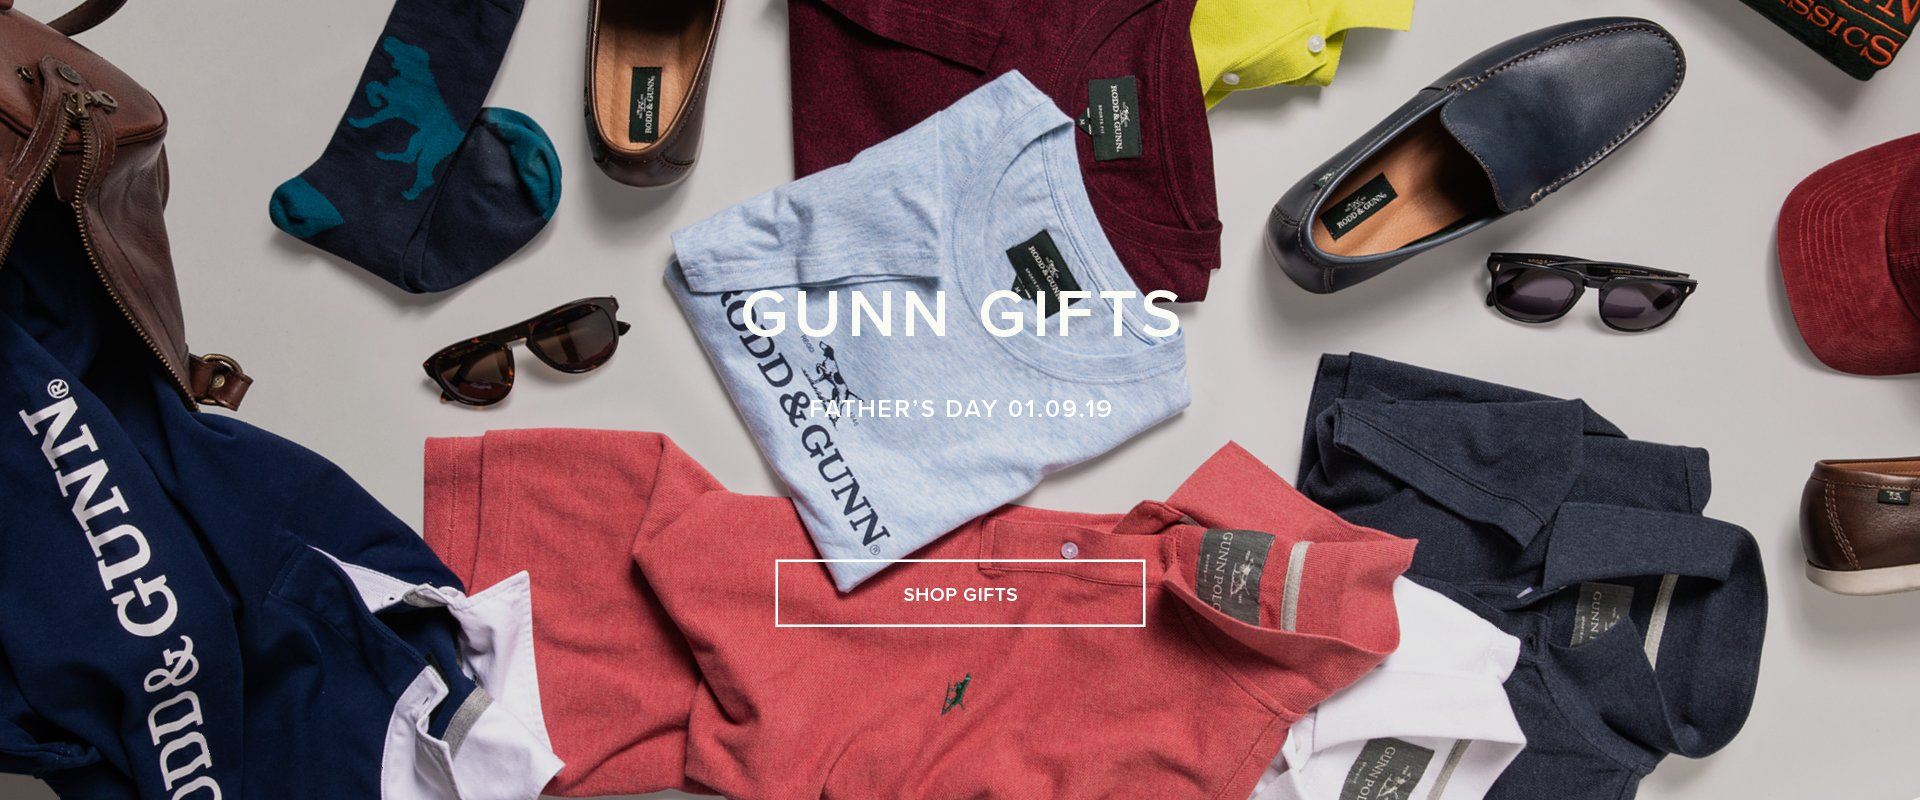 Gunn Gifts For Father's Day - Shop Now